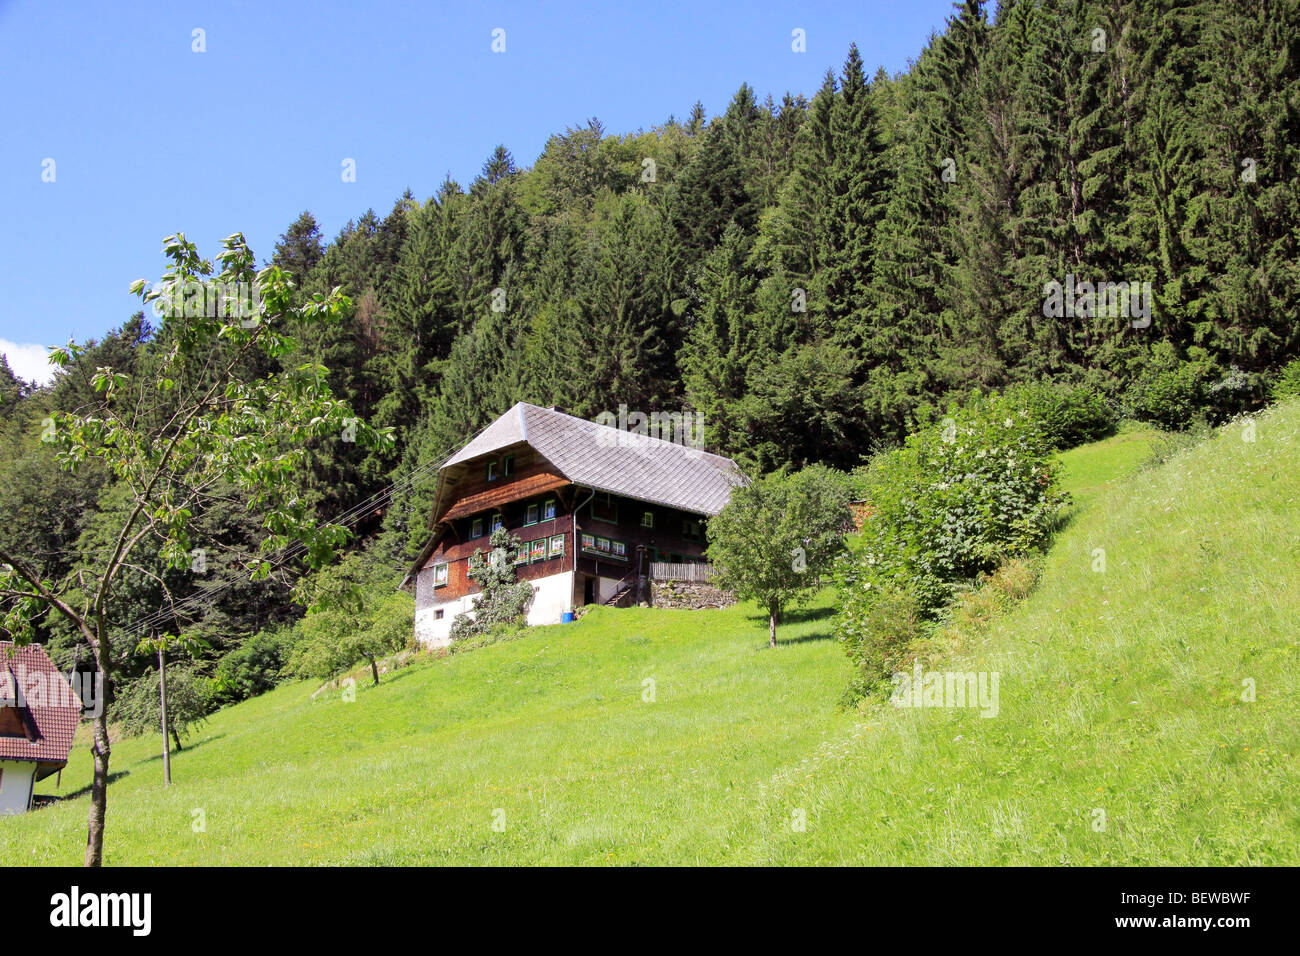 Ferme l 39 hexenloch for t noire baden wurttemberg allemagne banque d 39 images photo stock - Chambre d hote allemagne foret noire ...